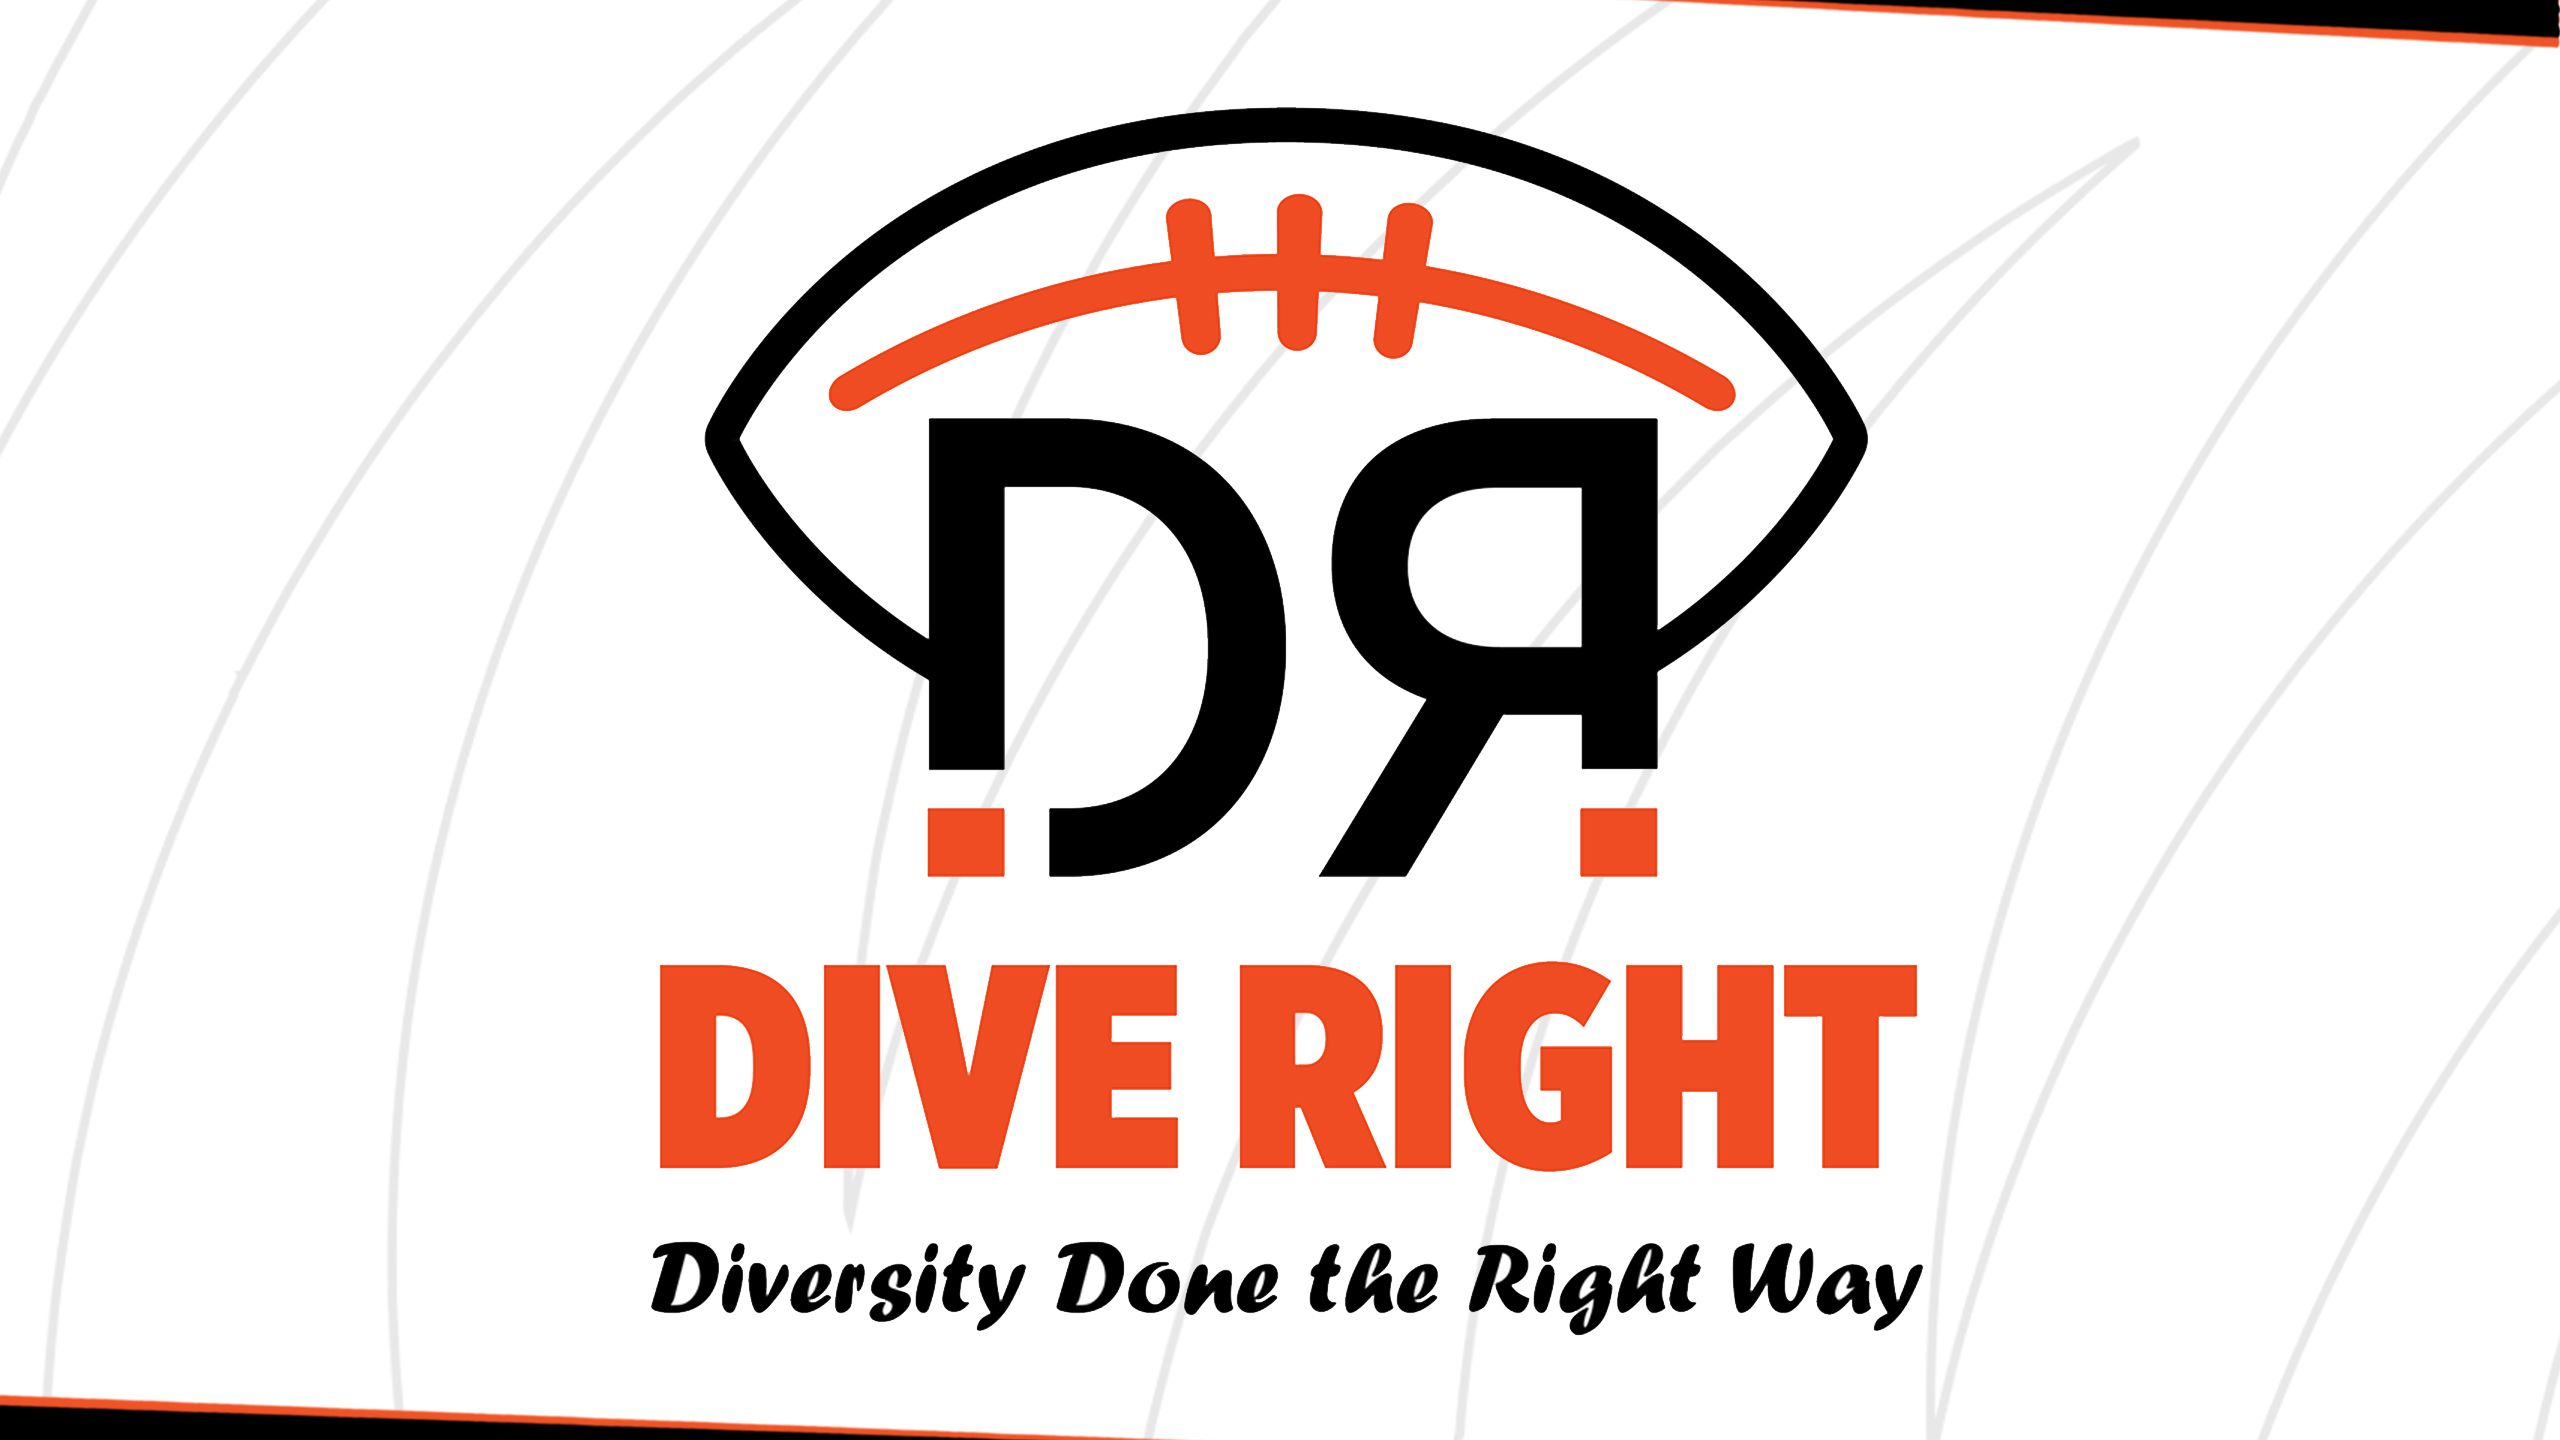 Dive Right Flag Football